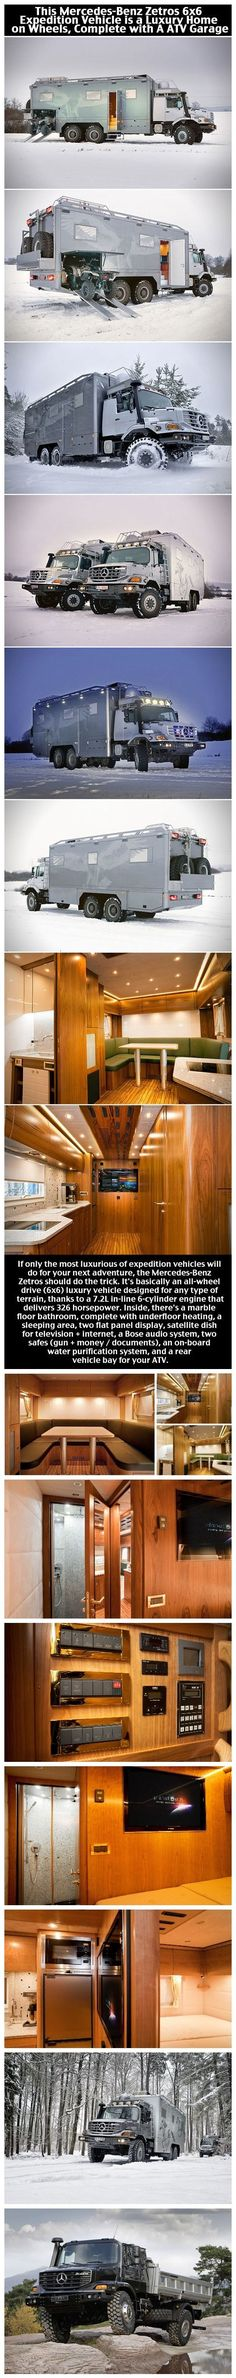 Mercedes Benz Zetros 6x6 Is A Luxury Home On Wheels With ATV Garage Pictures, Photos, and Images for Facebook, Tumblr, Pinterest, and Twitter